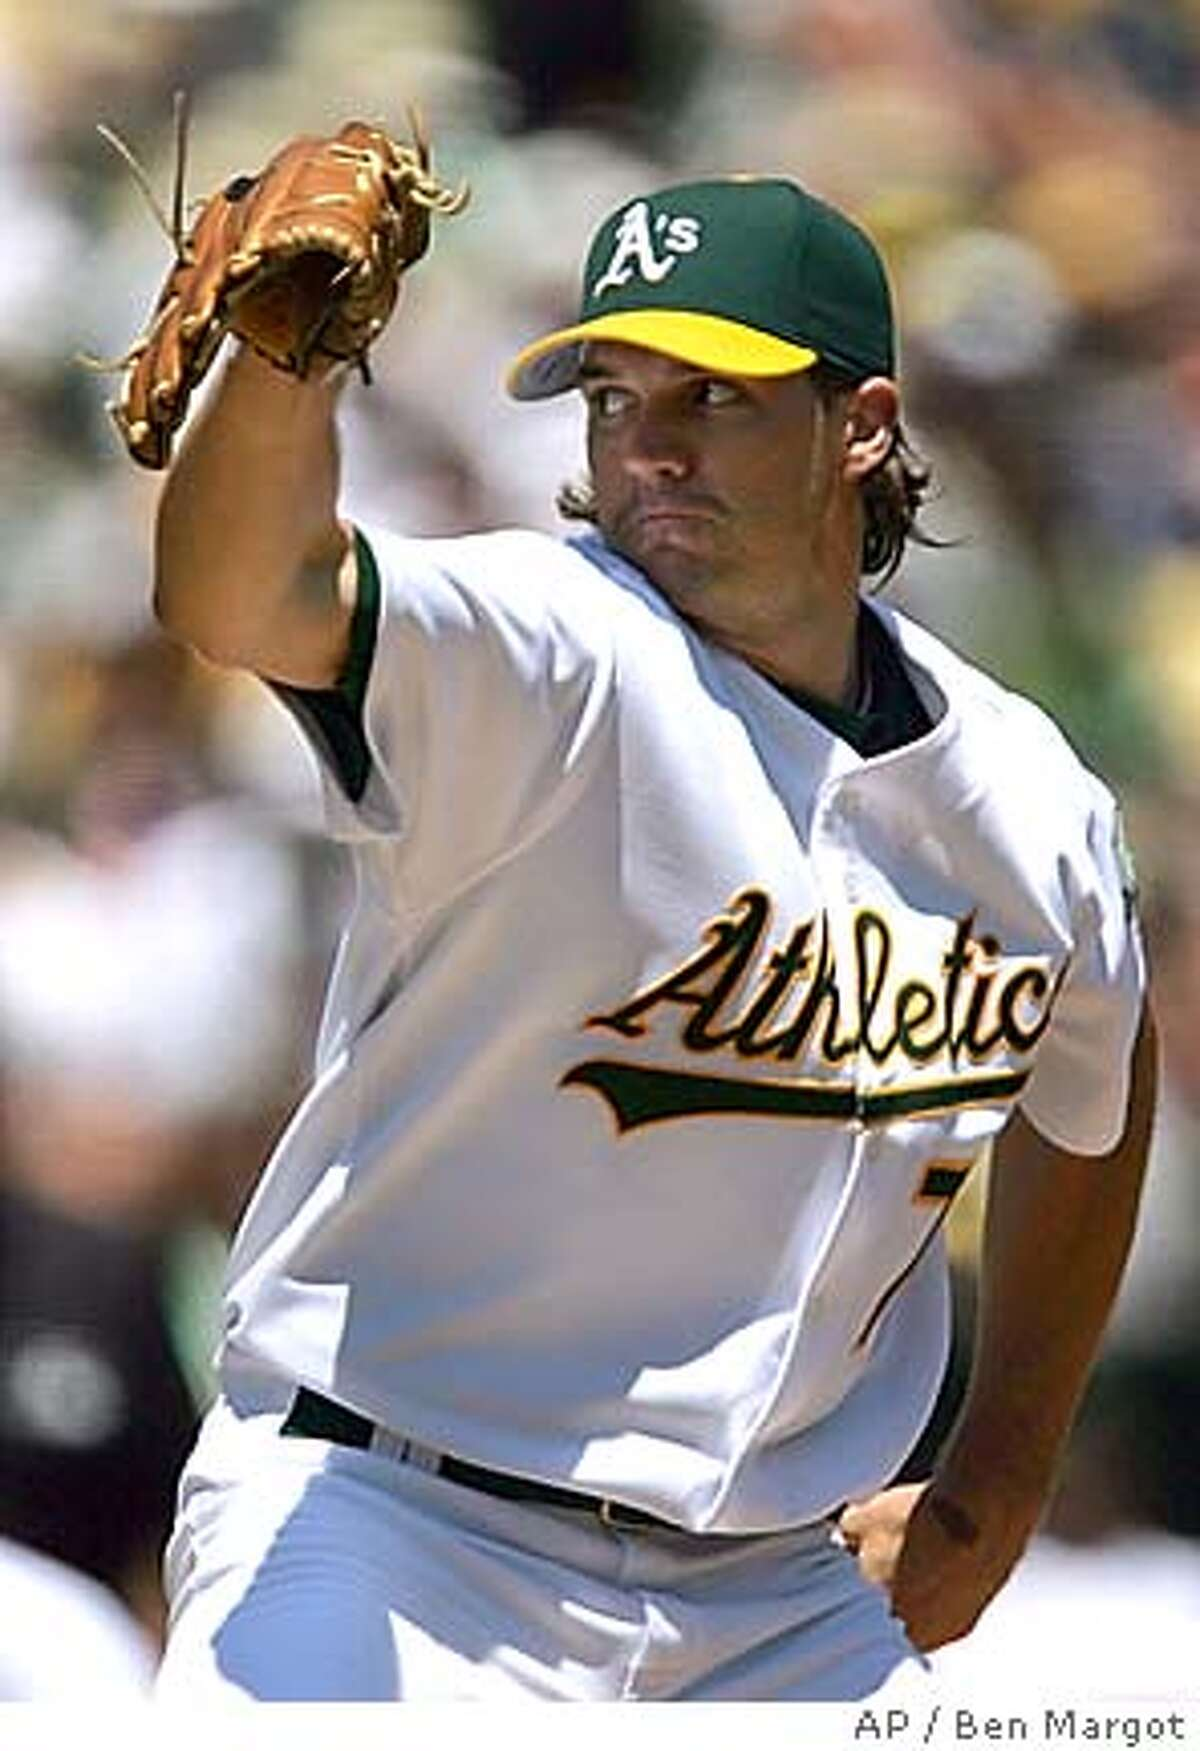 Oakland Athletics pitcher Barry Zito works against the Detroit Tigers in the first inning Saturday, July 30, 2005, in Oakland, Calif. (AP Photo/Ben Margot)